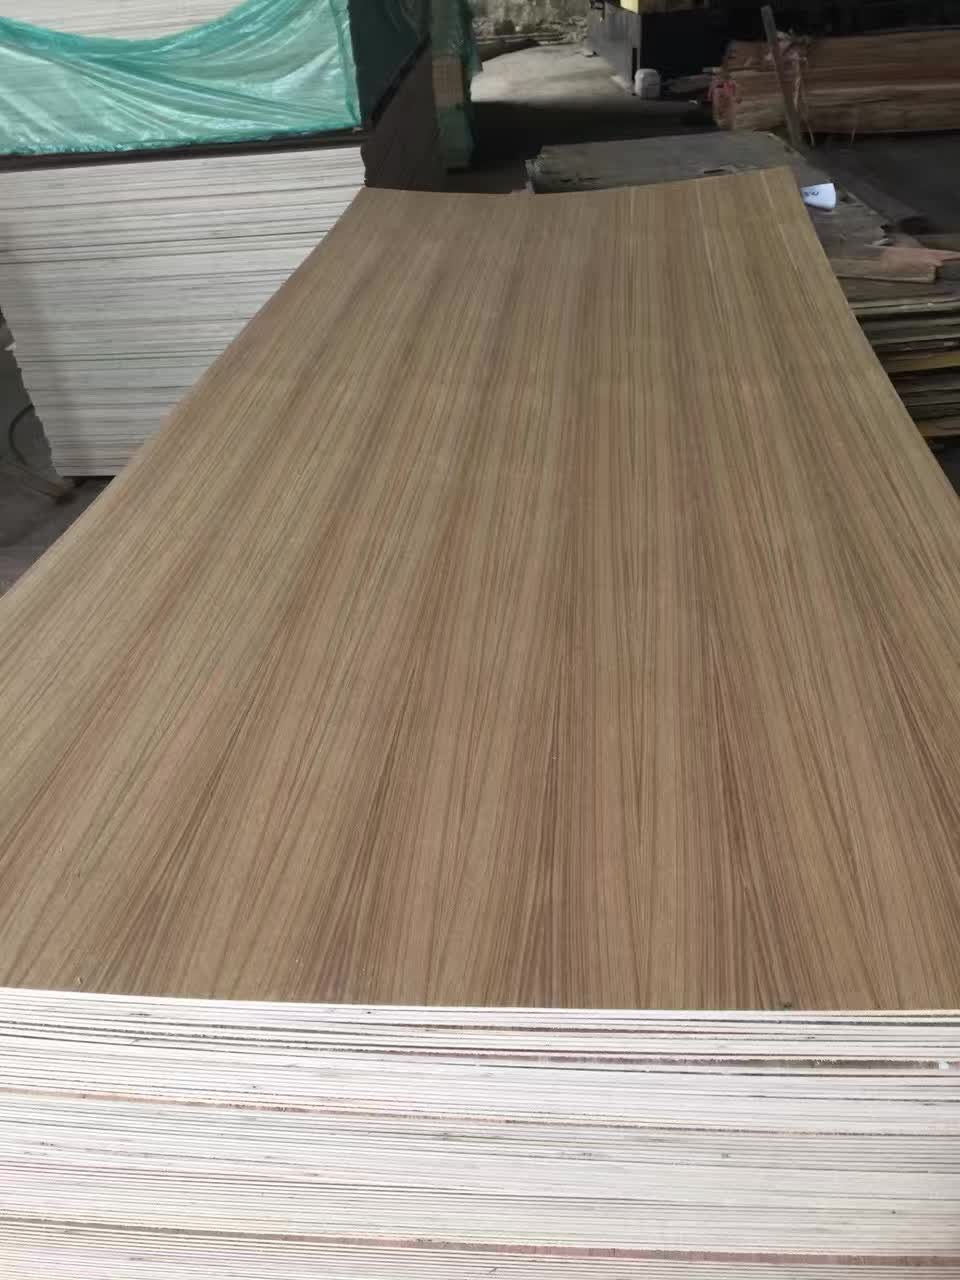 price of plywood 15mm /plywood sheet for furniture / commercial plywood